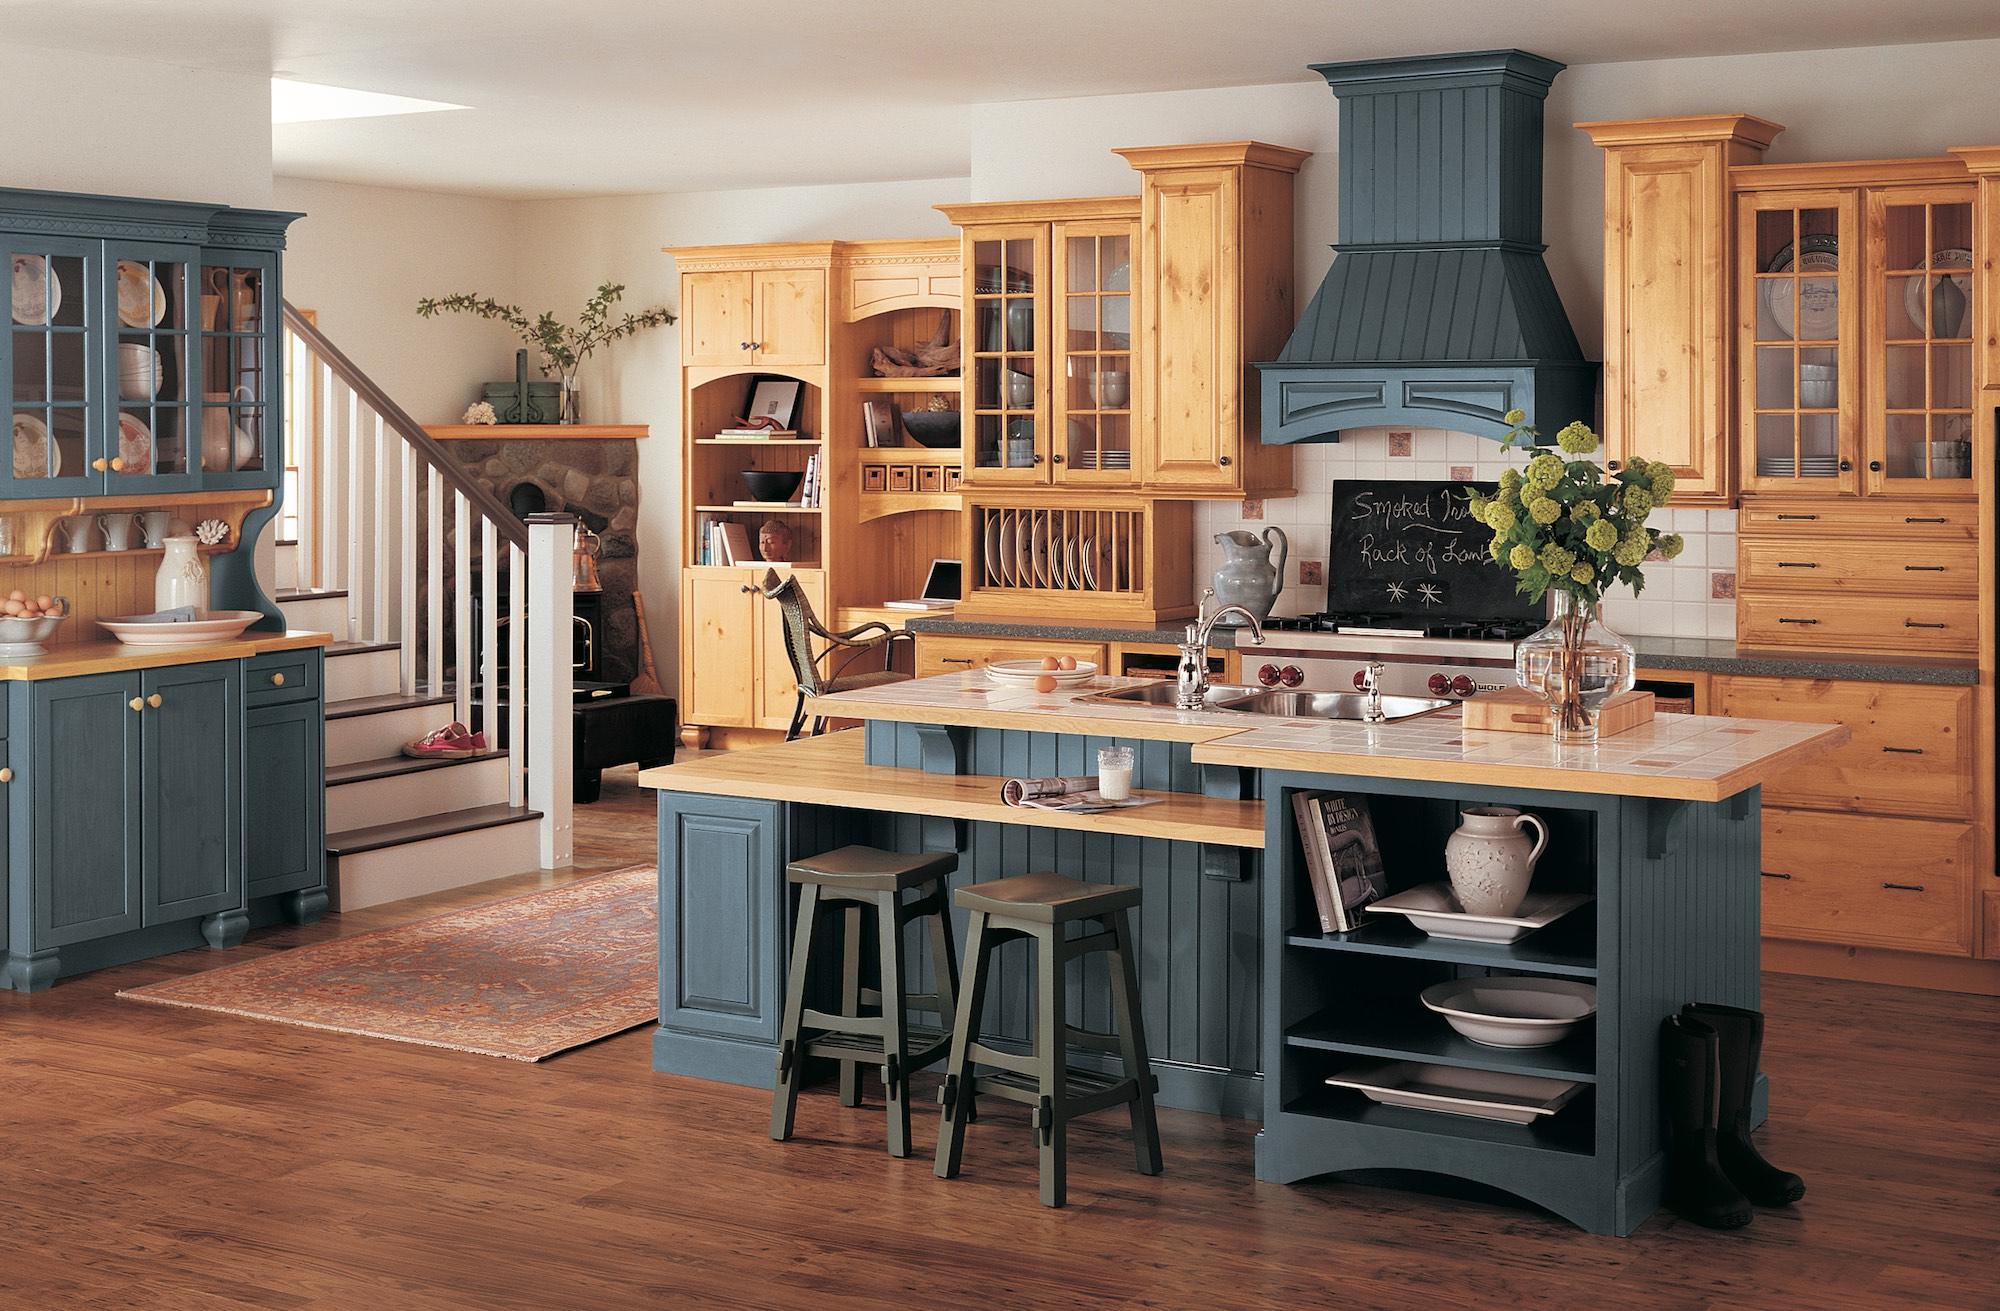 www.kitchen.com painting kitchen cabinets black mid state kitchens wholesale design remodeling installation